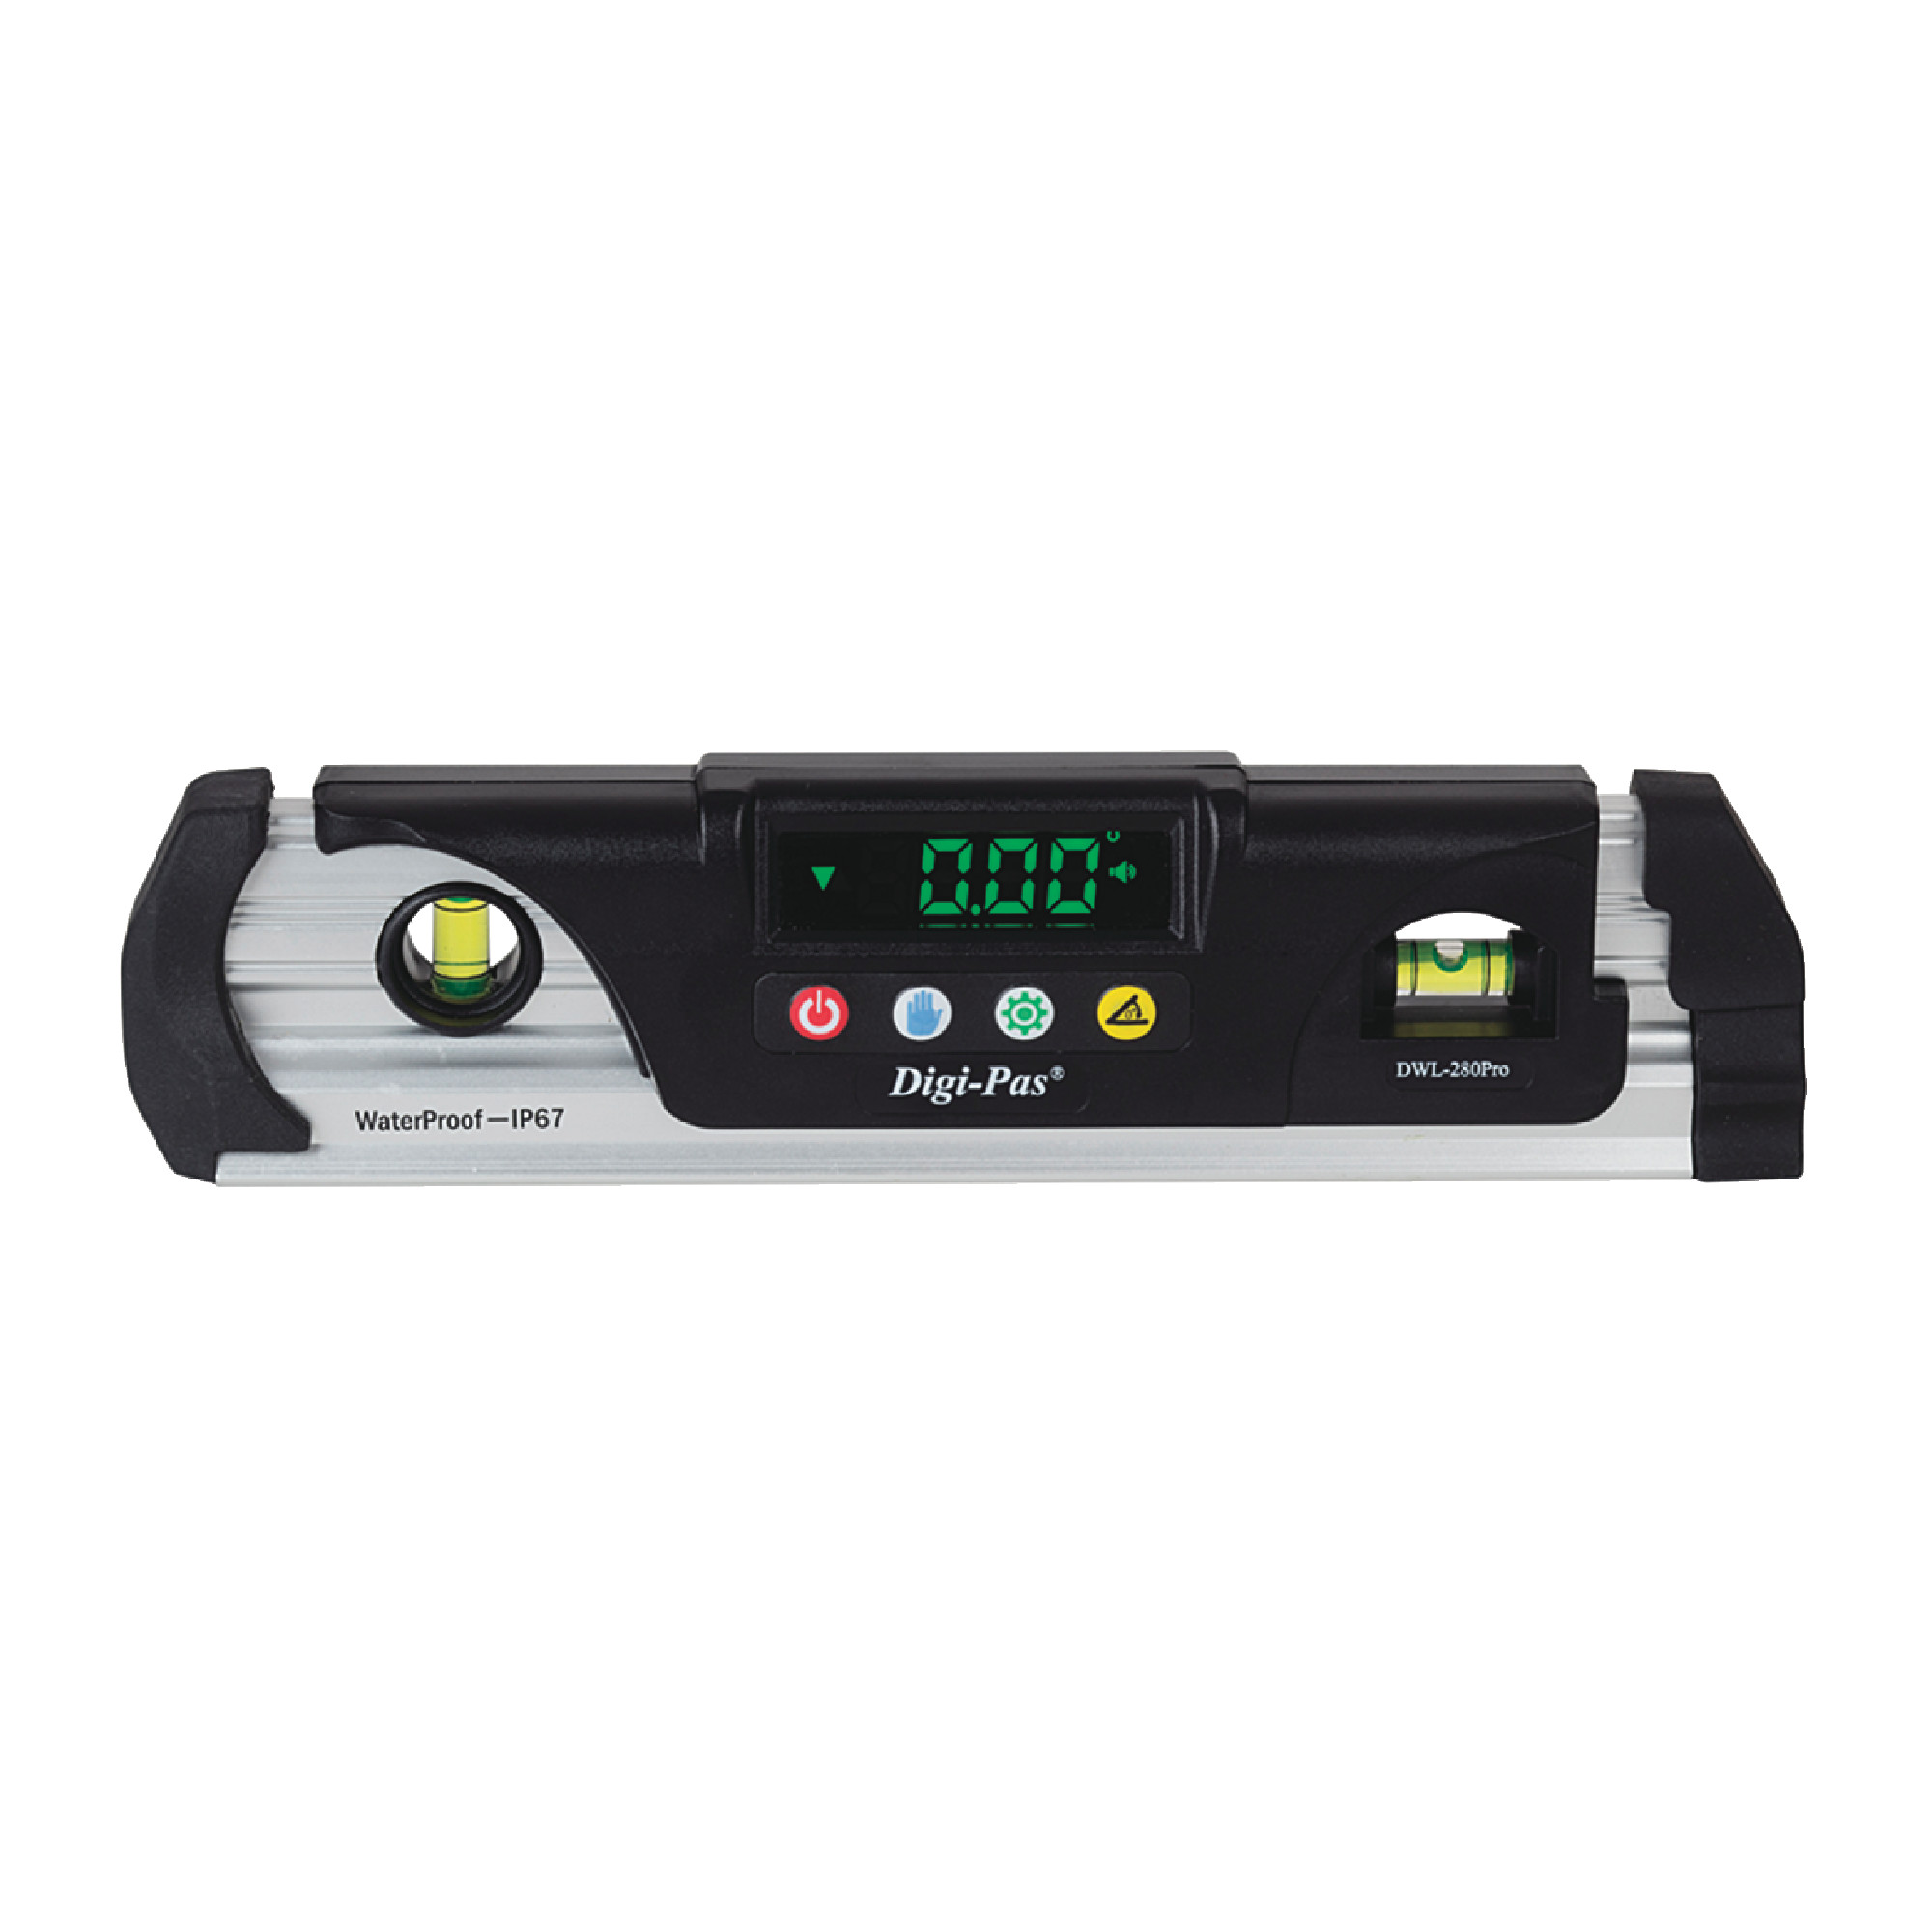 IP67 Waterproof Digital Level with Magnet at V-groove Base